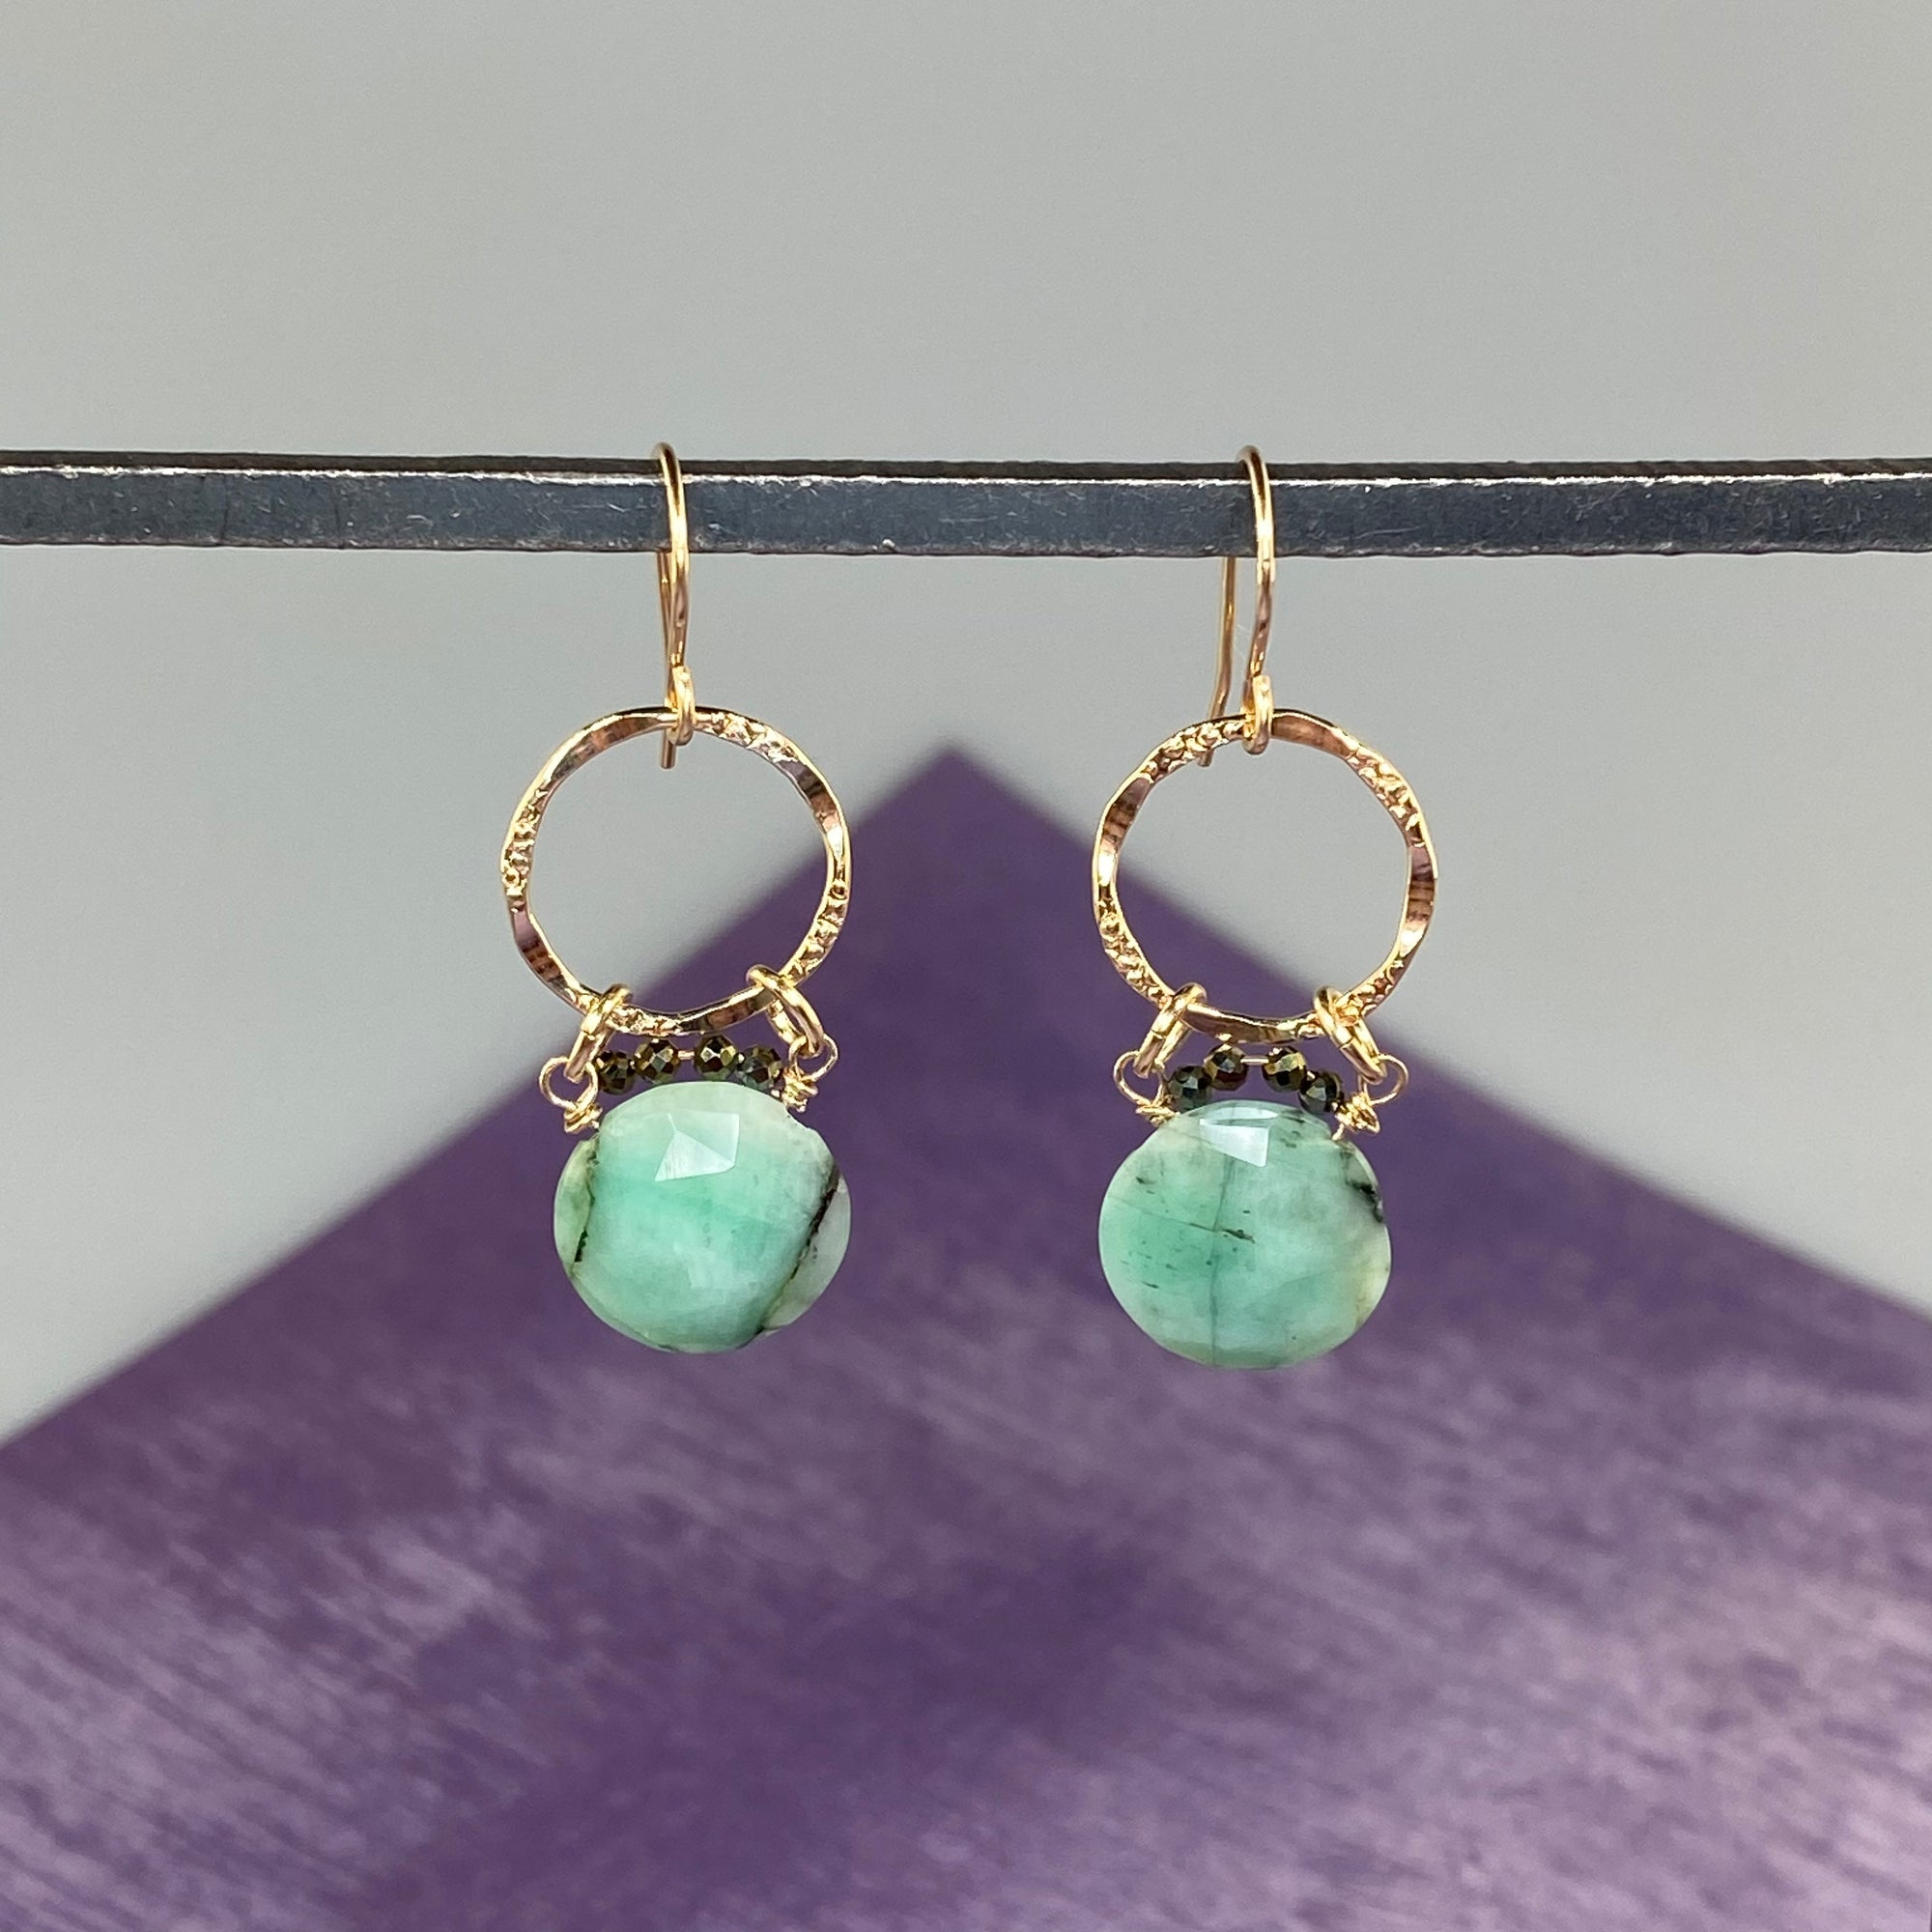 Emerald Coin Earrings - Heart of the Home PA